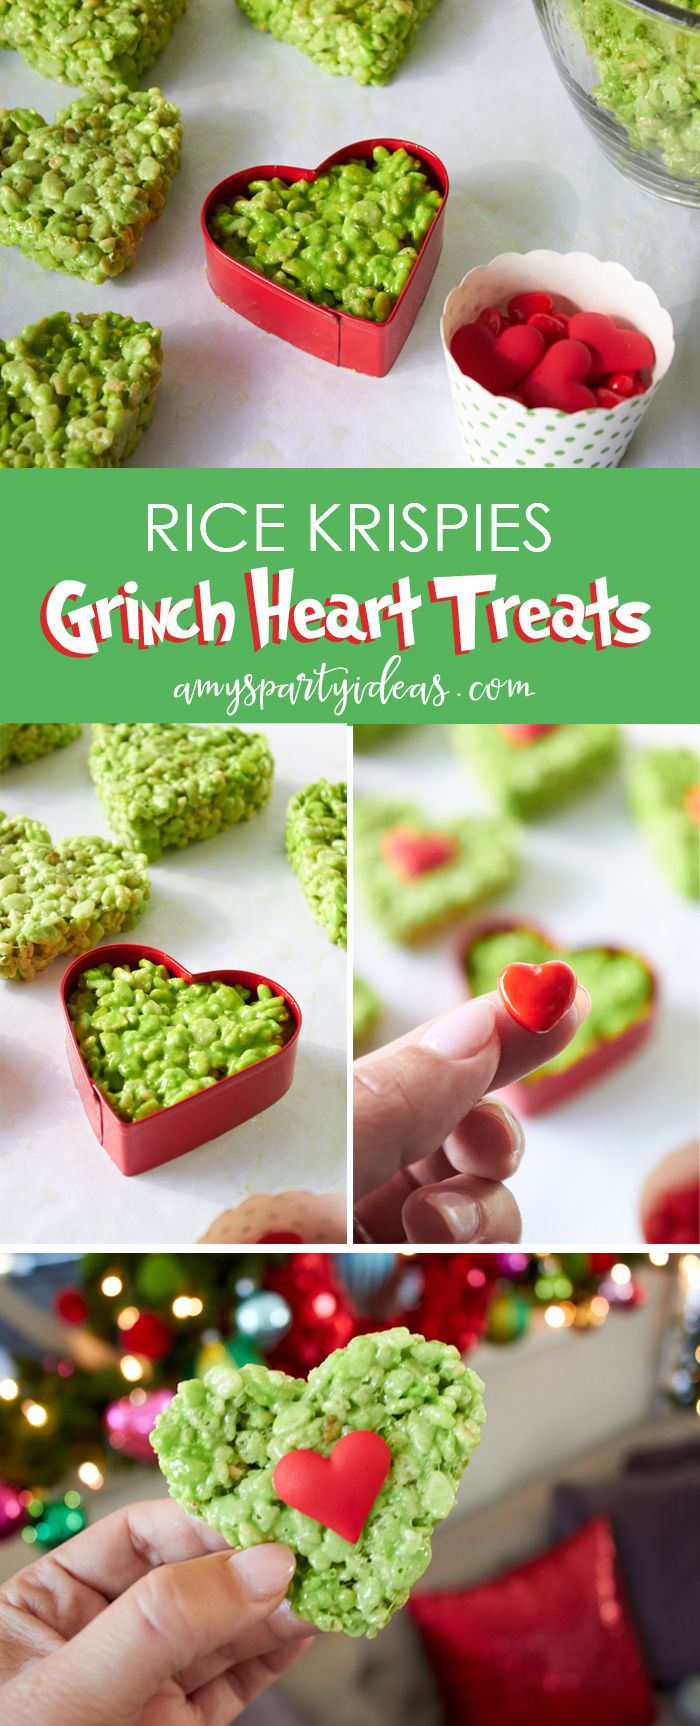 Rice Krispies Grinch Heart Treats |Have a Holiday Family Movie Night | SImple party ideas for movie night at home from AmysPartyIdeas.com | #TidingsAndTreats #ad | FREE Printables Grinch Movie